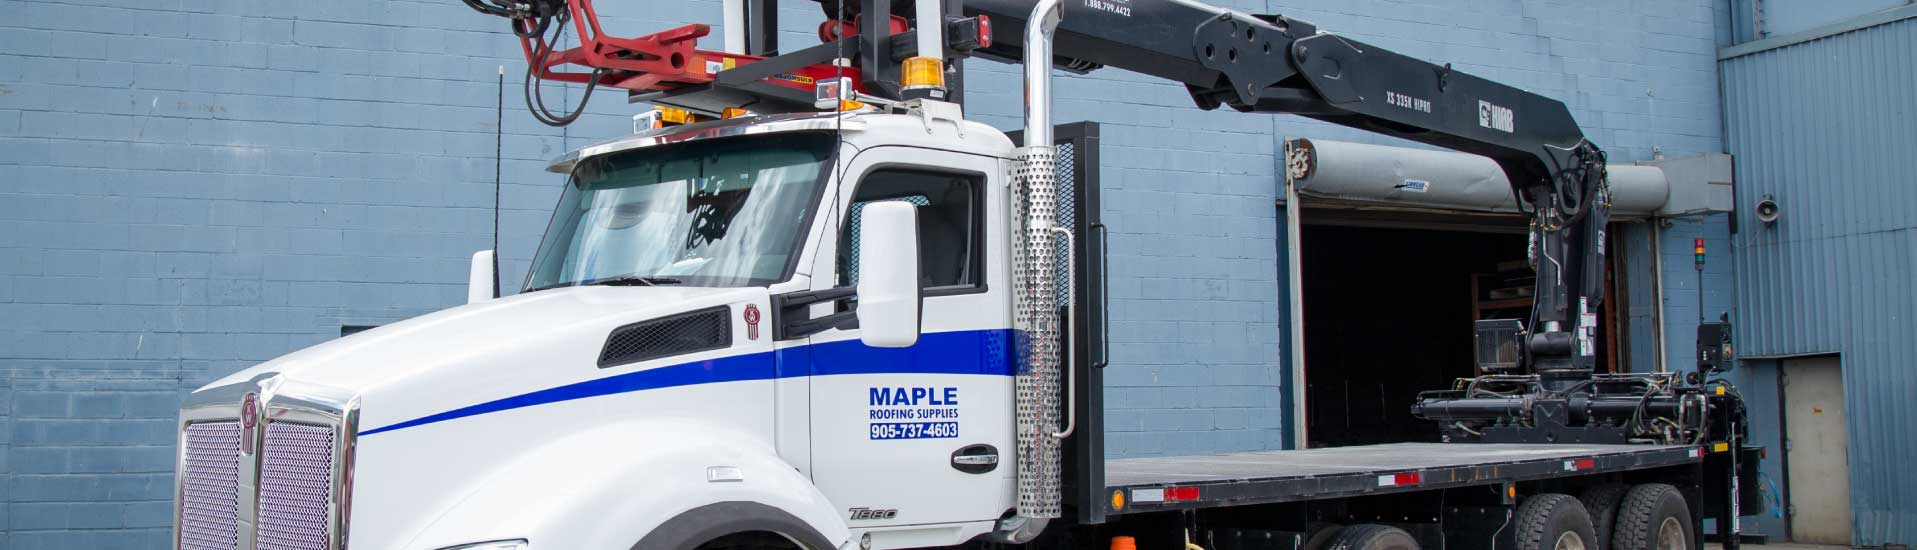 Maple Roofing truck